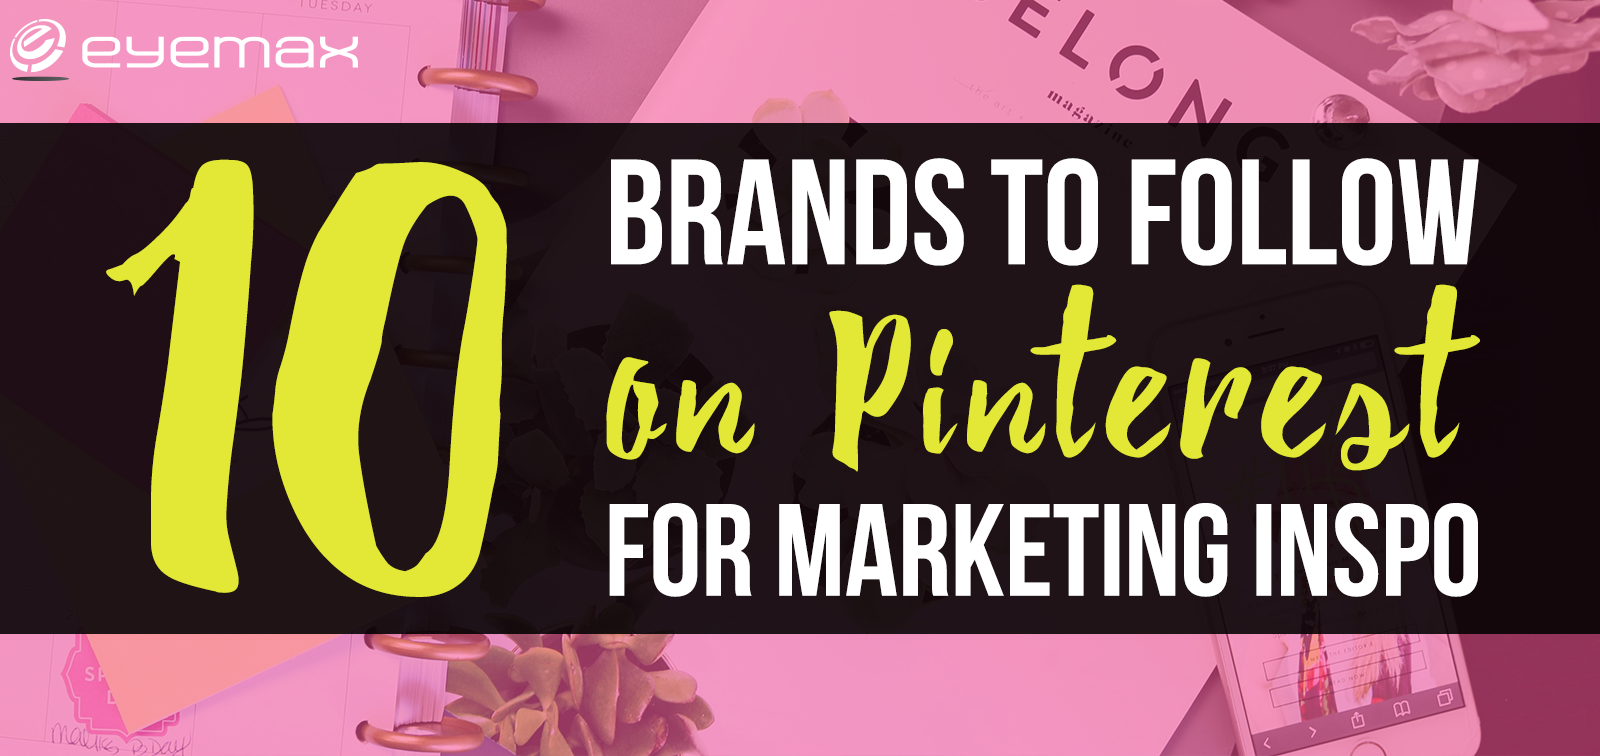 10 Brands to Follow on Pinterest for Marketing Inspo